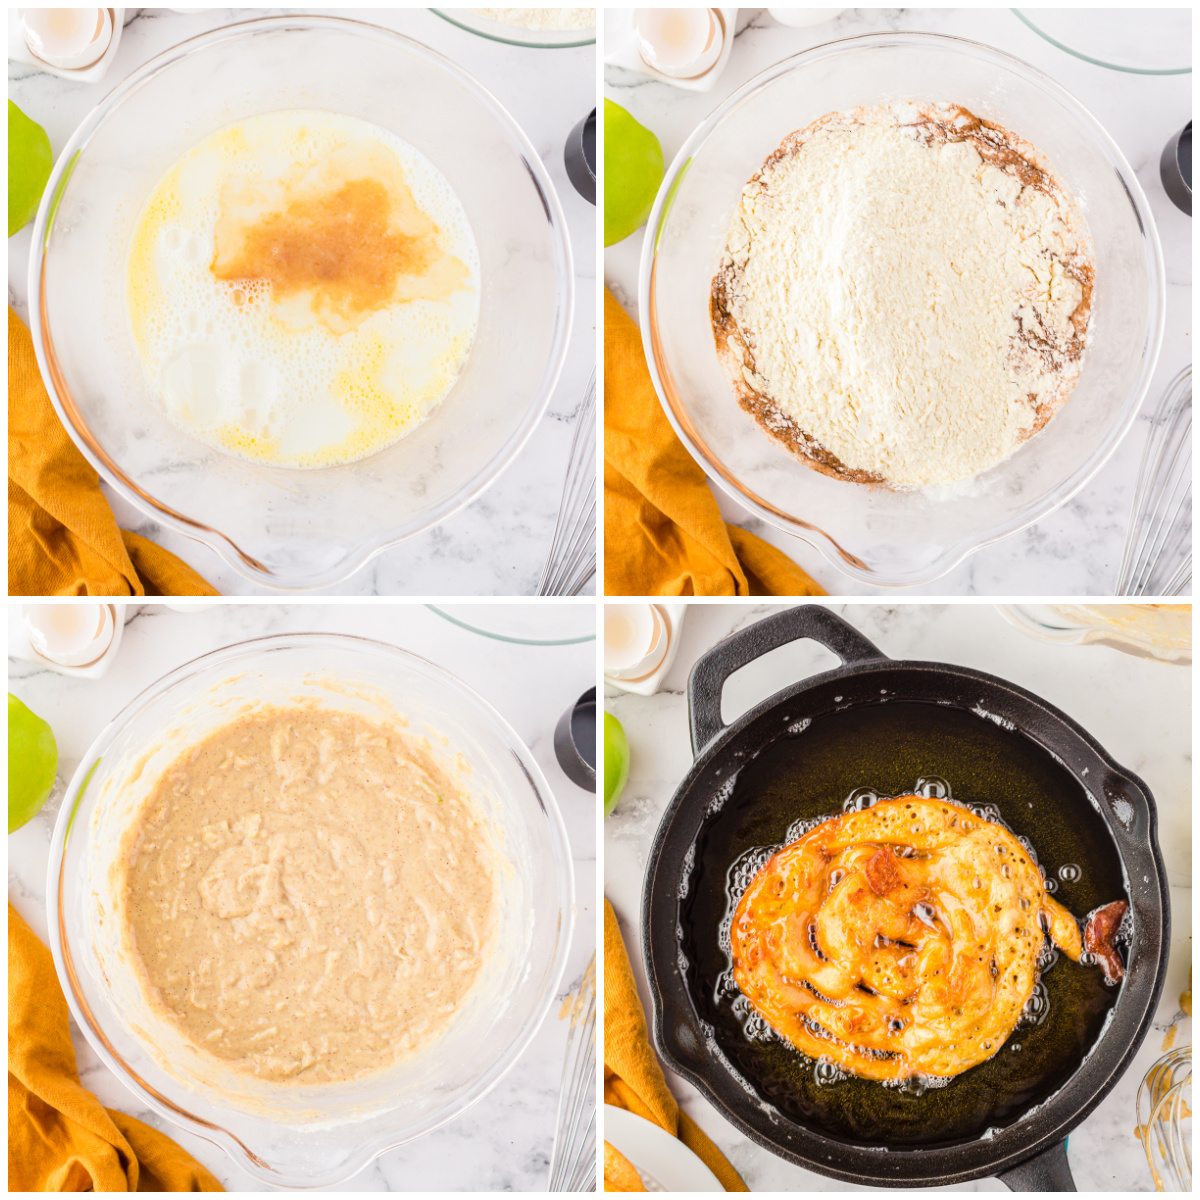 Step by step photos on how to make Caramel Apple Funnel Cakes